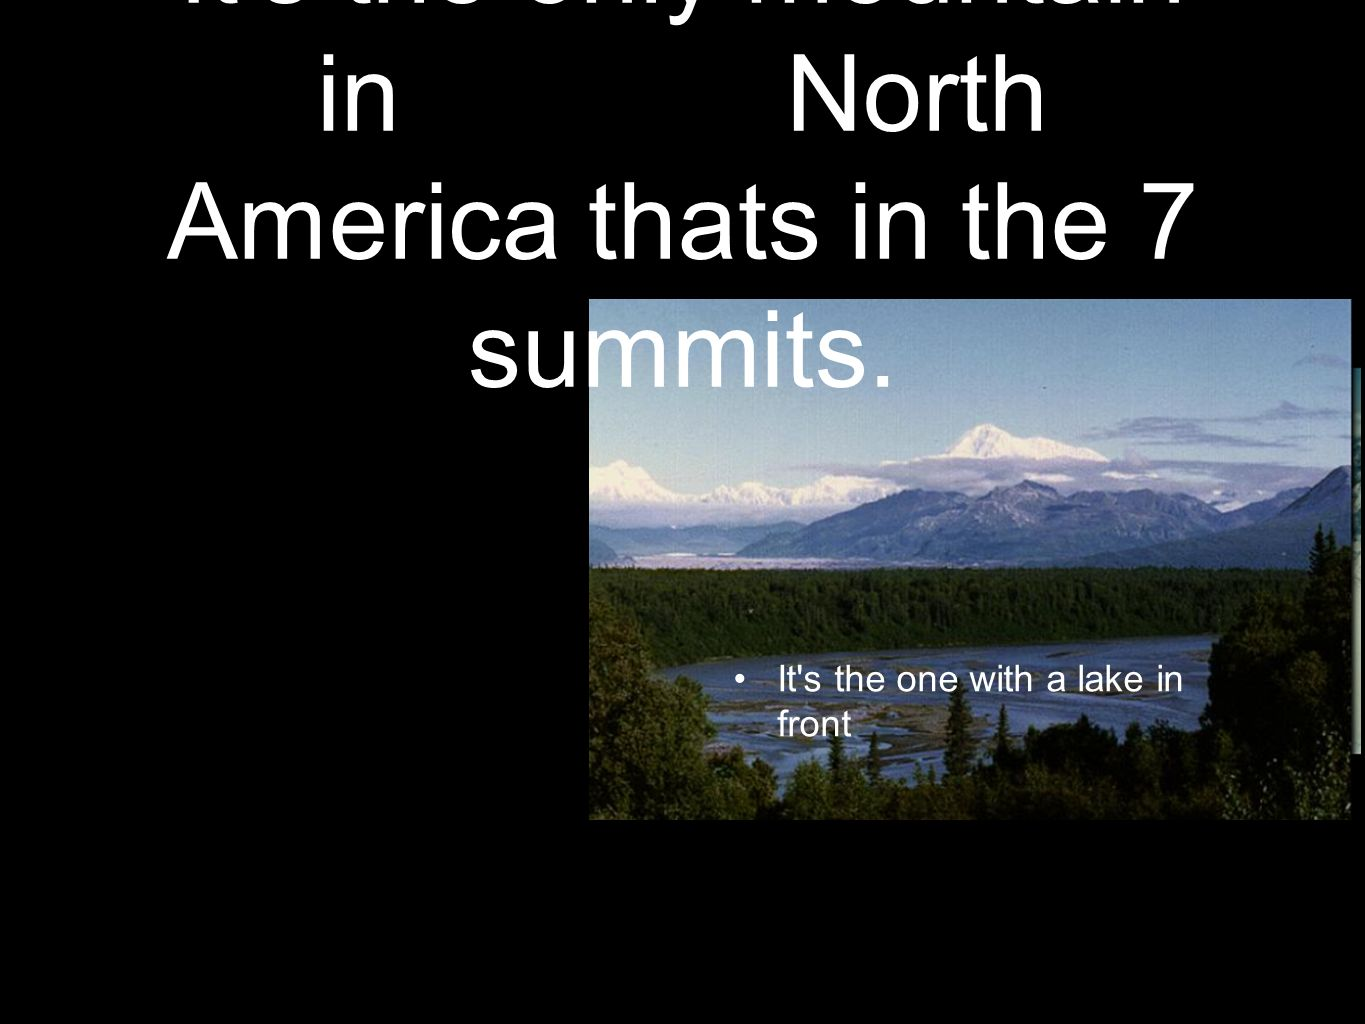 It s the only mountain in North America thats in the 7 summits. It s the one with a lake in front